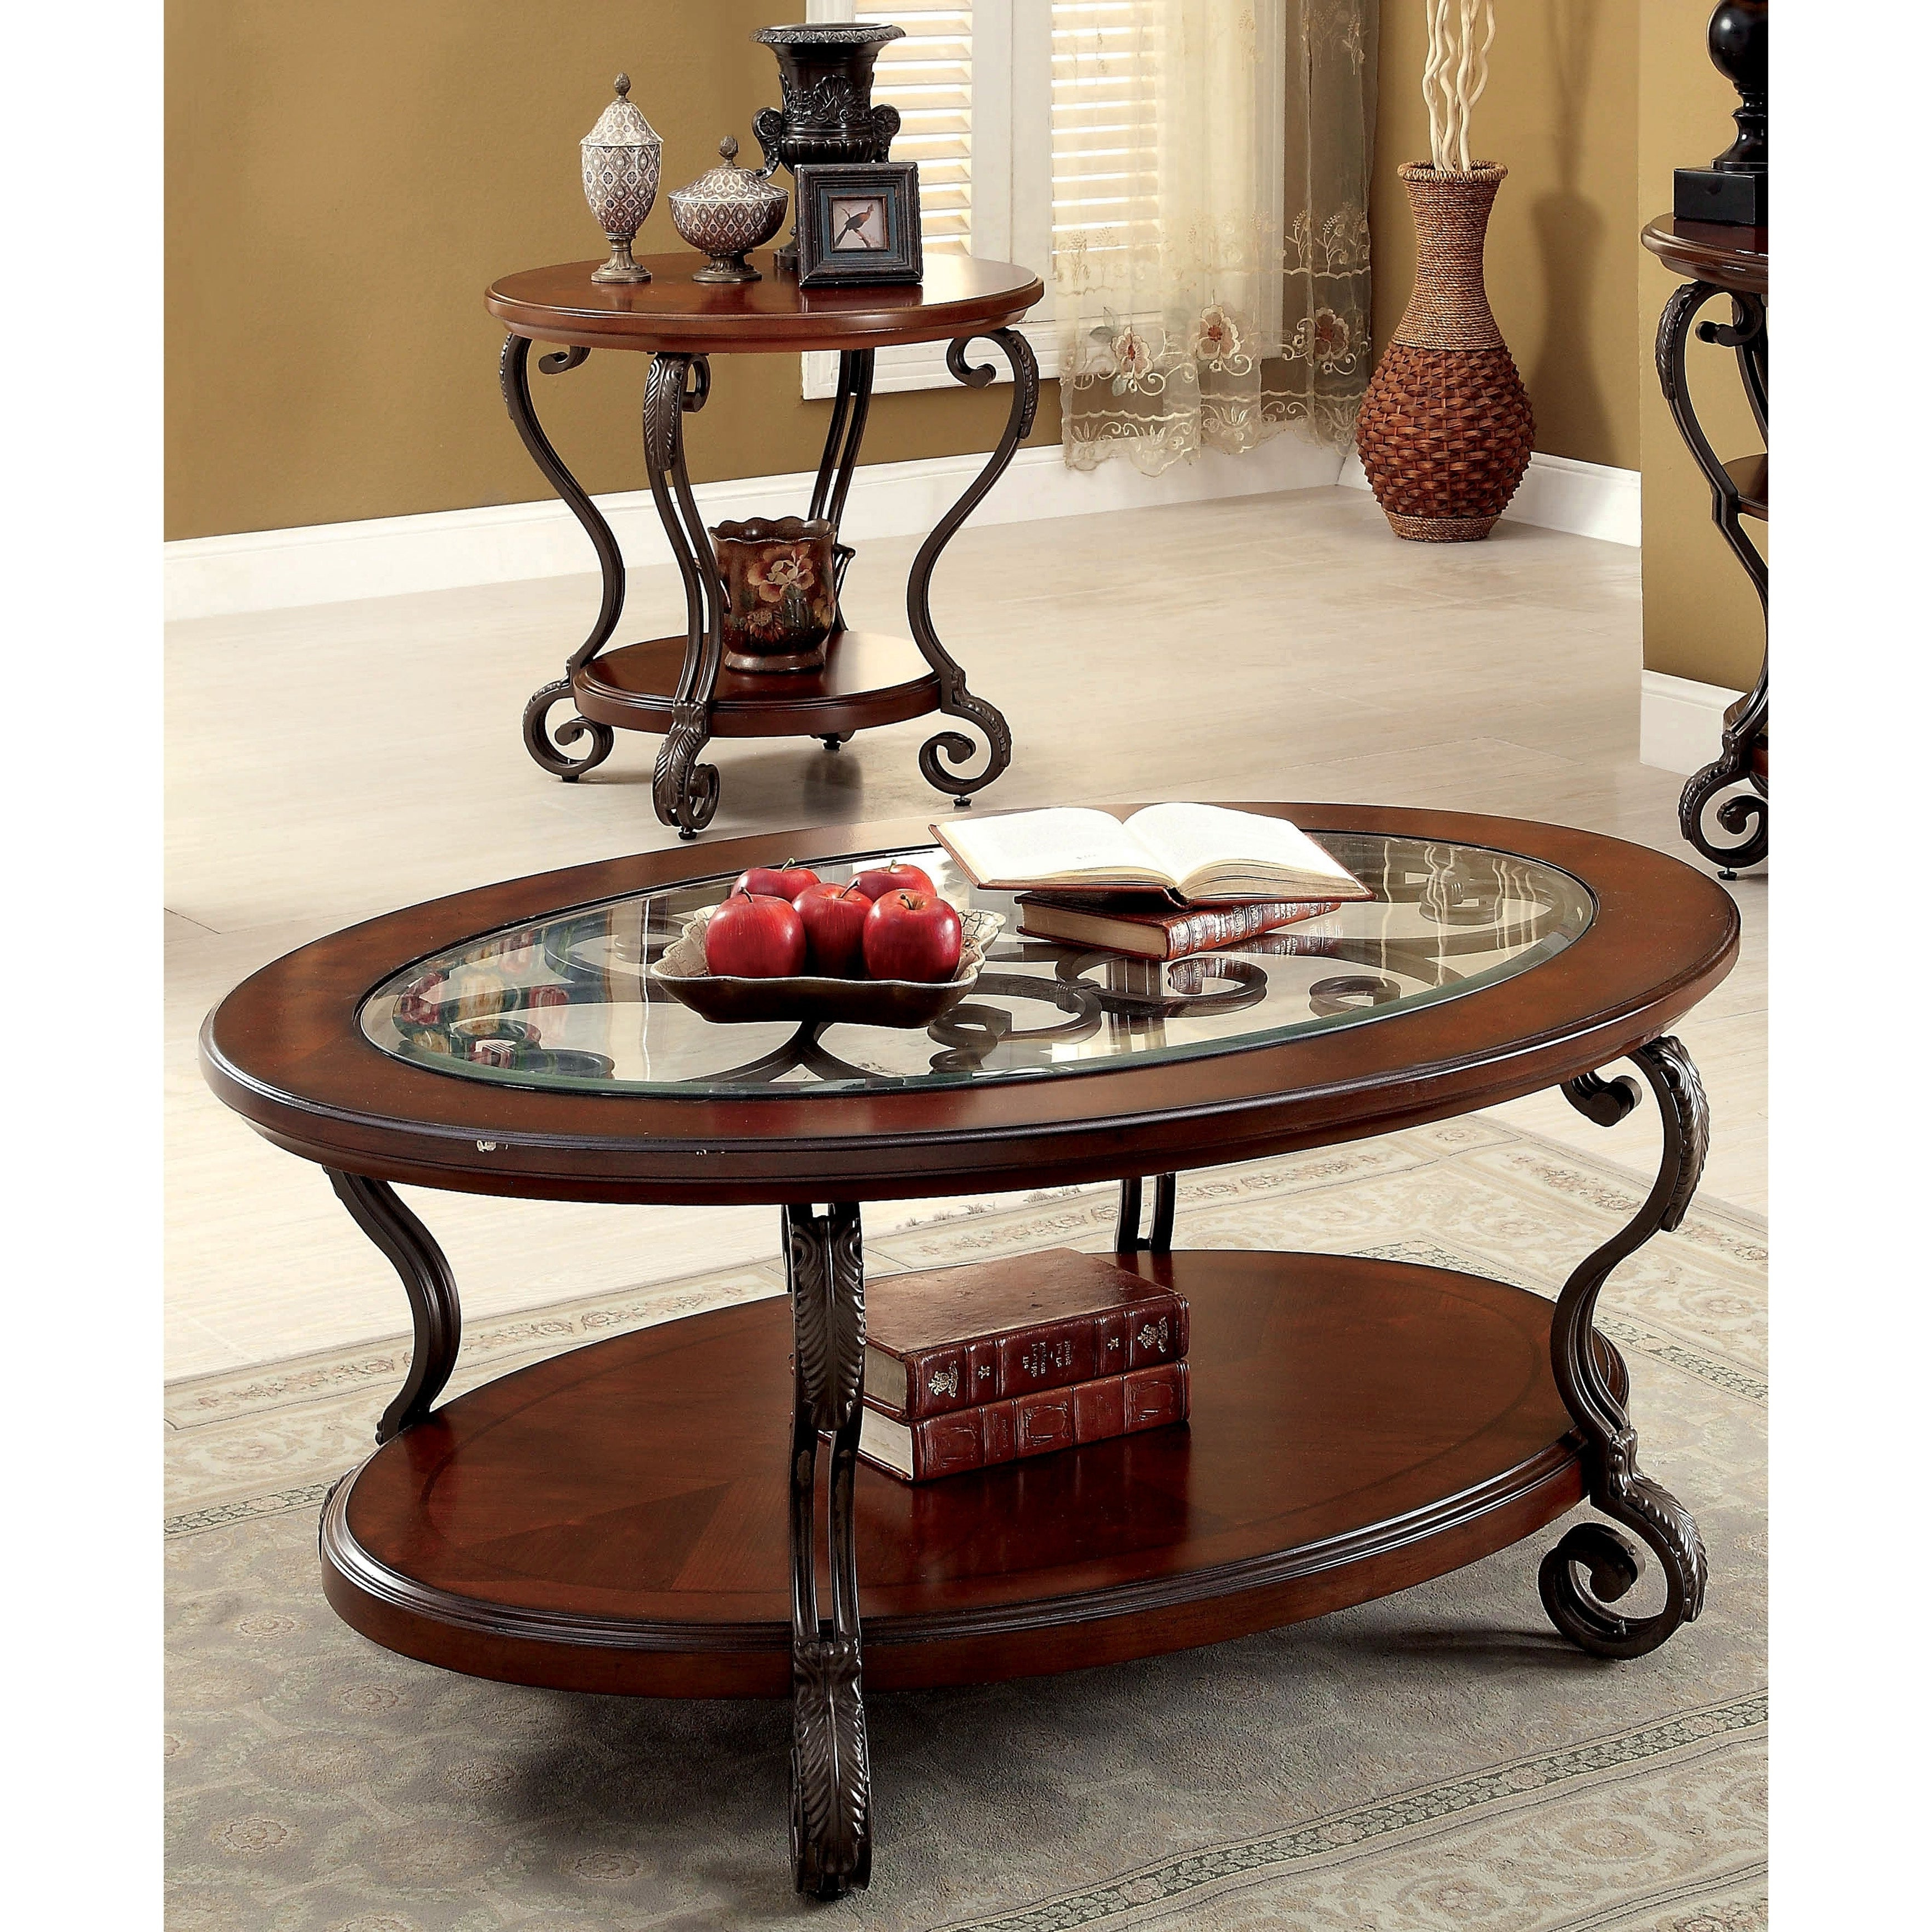 Cohler Traditional Brown Cherry 2 Piece Coffee Table Setfoa With 2019 Cohler Traditional Brown Cherry Oval Coffee Tables (View 4 of 20)